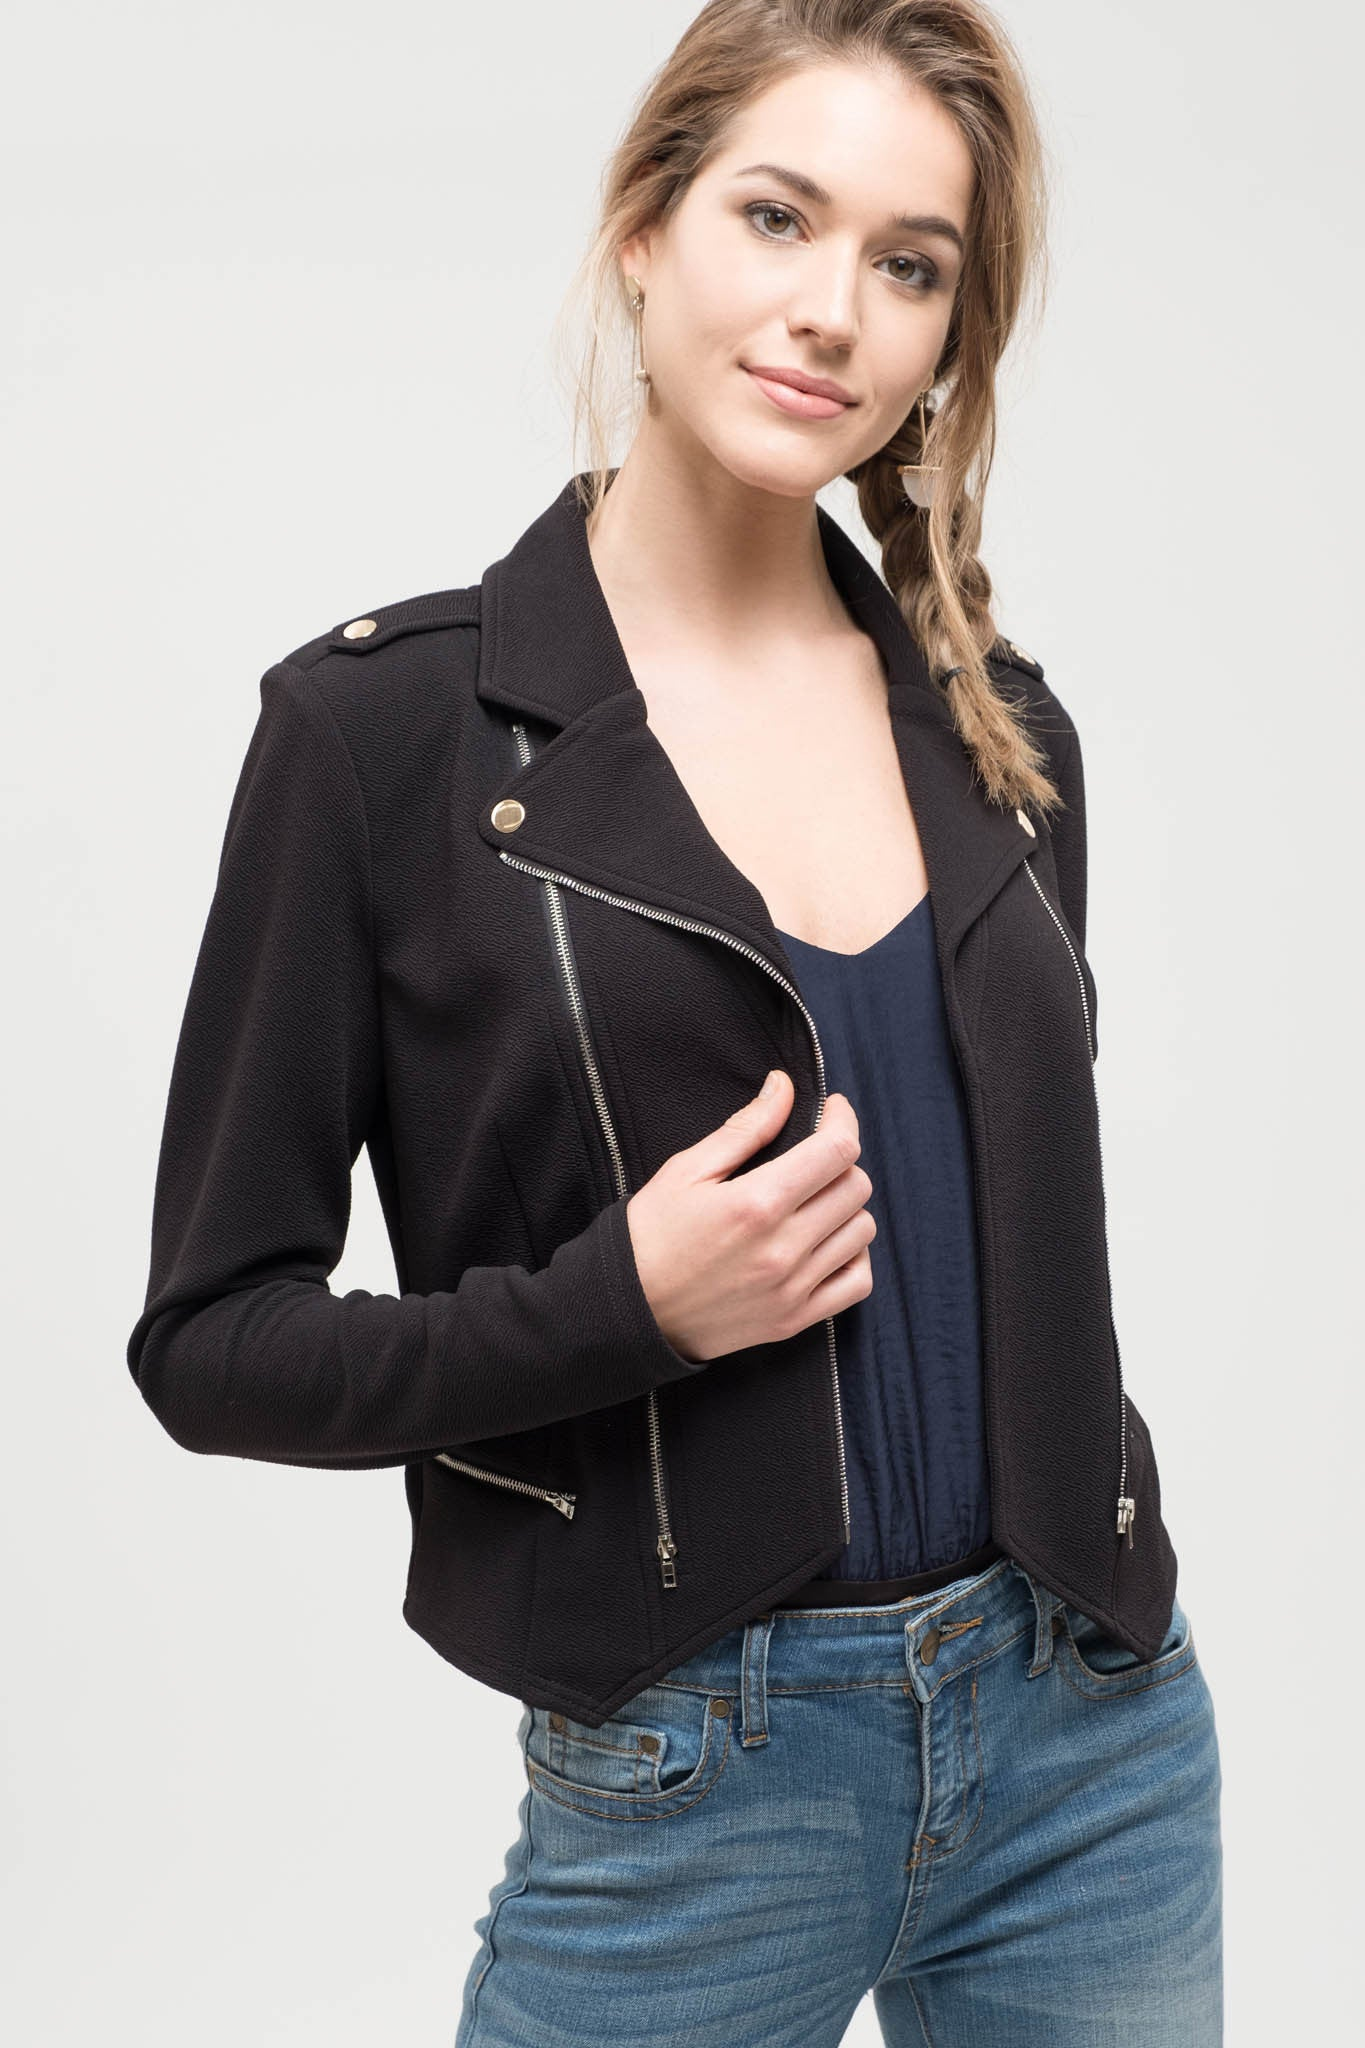 Solid black textured jacket with zipper detail.